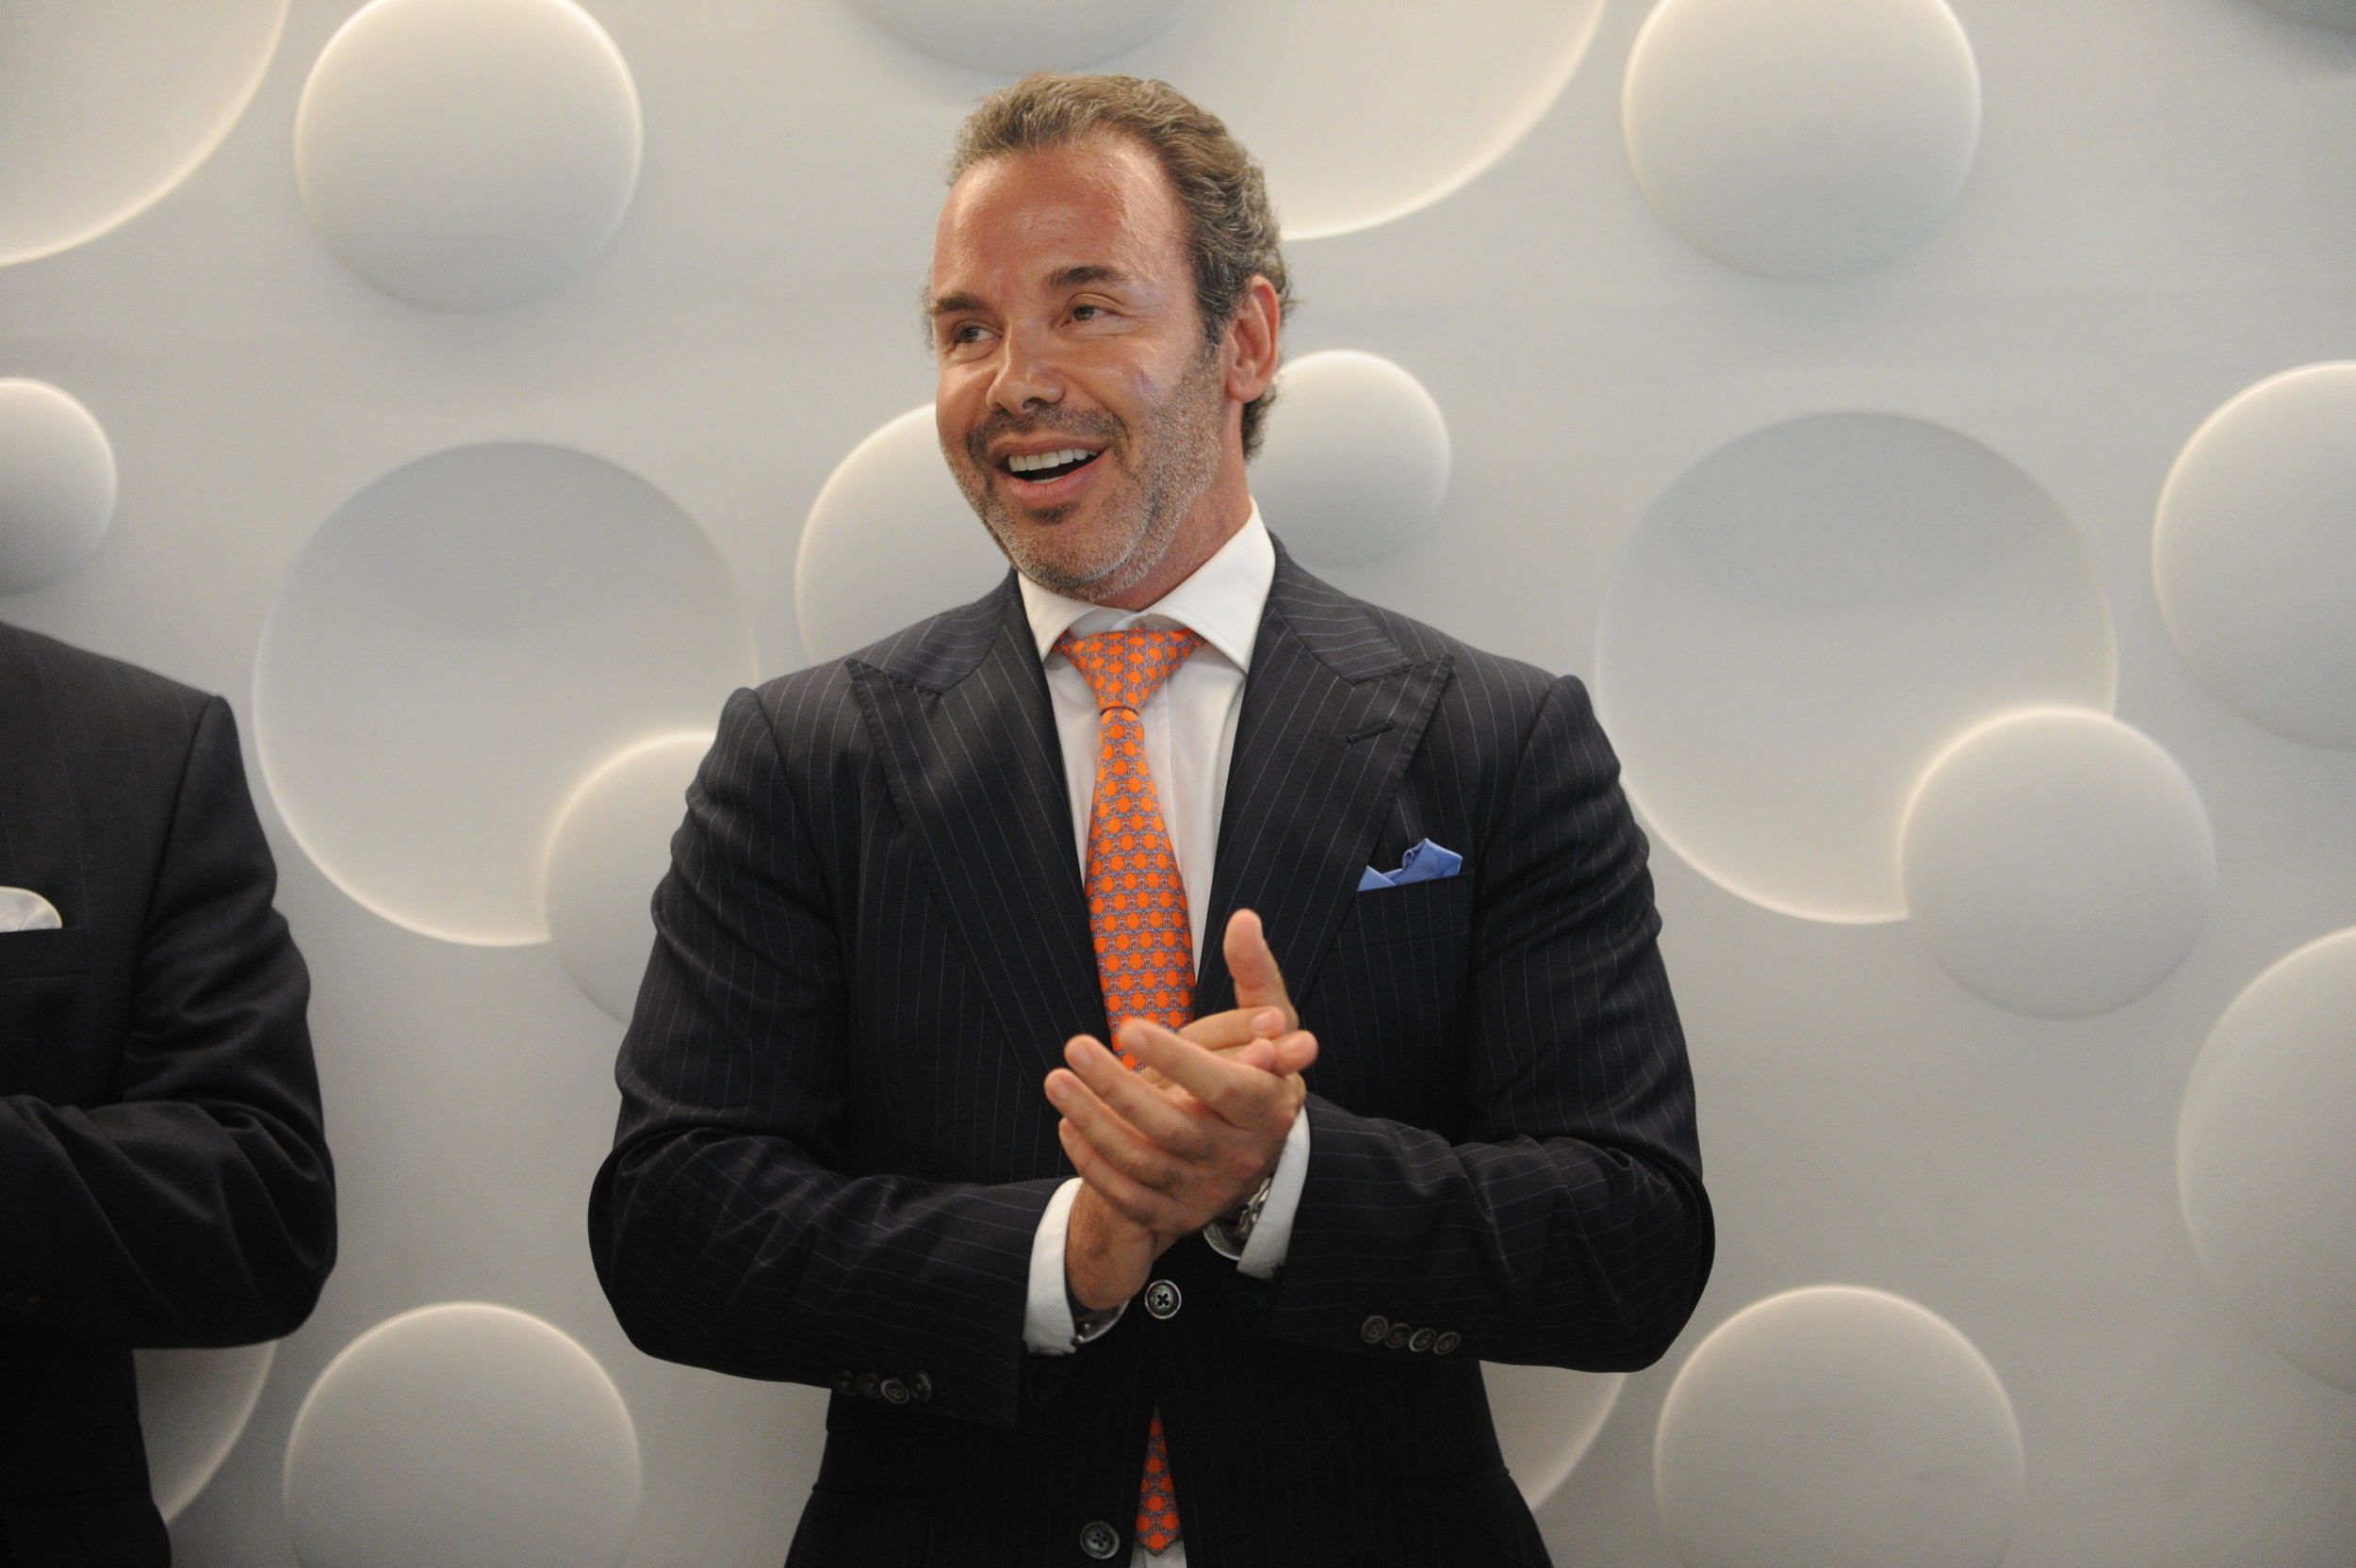 Douglas Elliman Continues South Florida Expansion With Announcement Of First Coral Gables Office